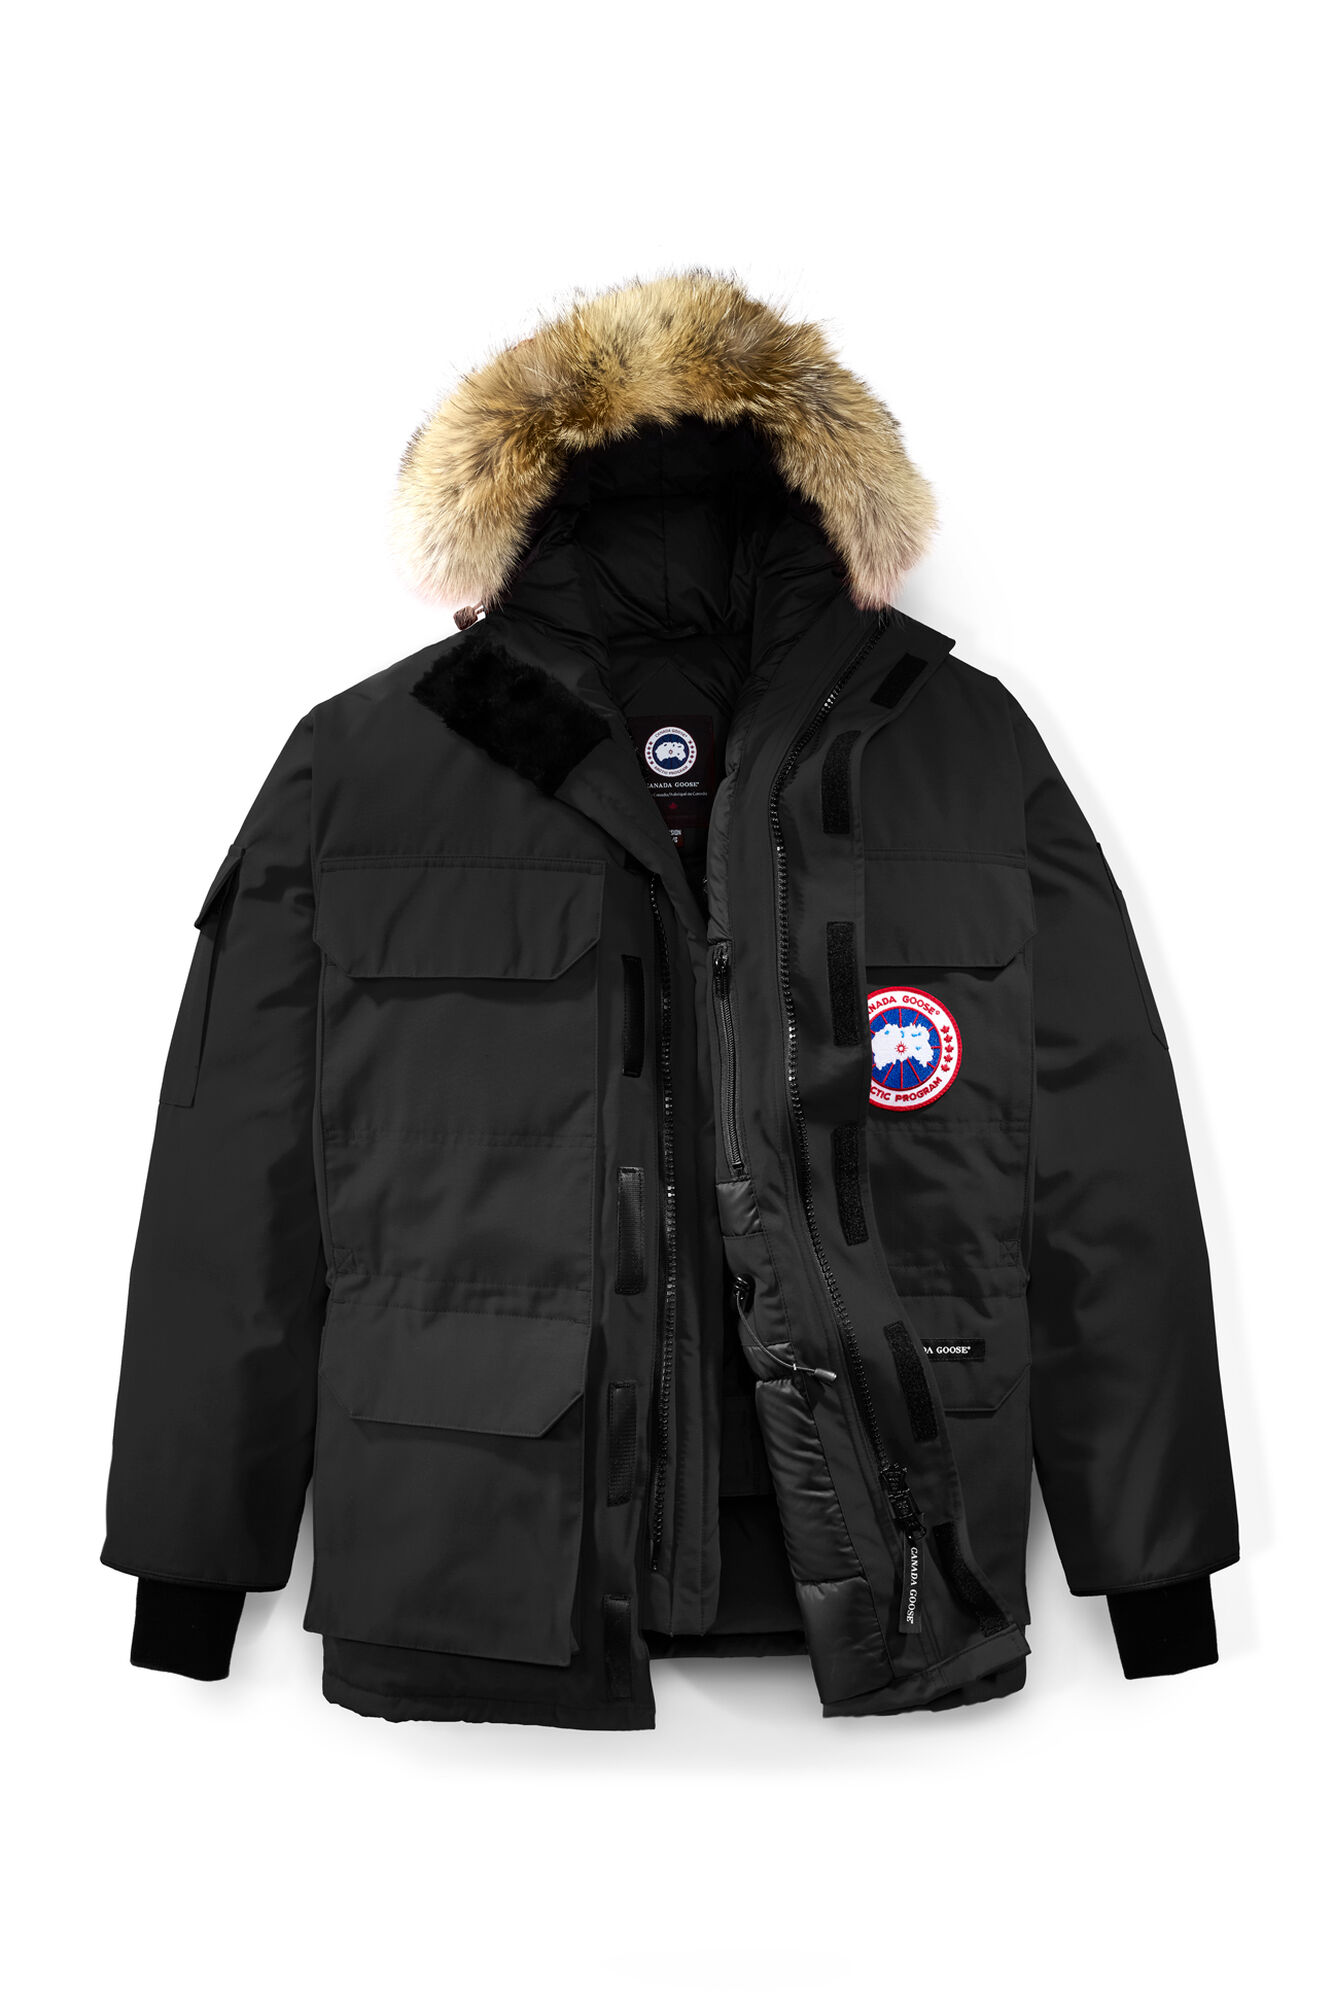 Canada Goose kensington parka sale official - Men's Parkas | Expedition | Mountaineer | Canada Goose?